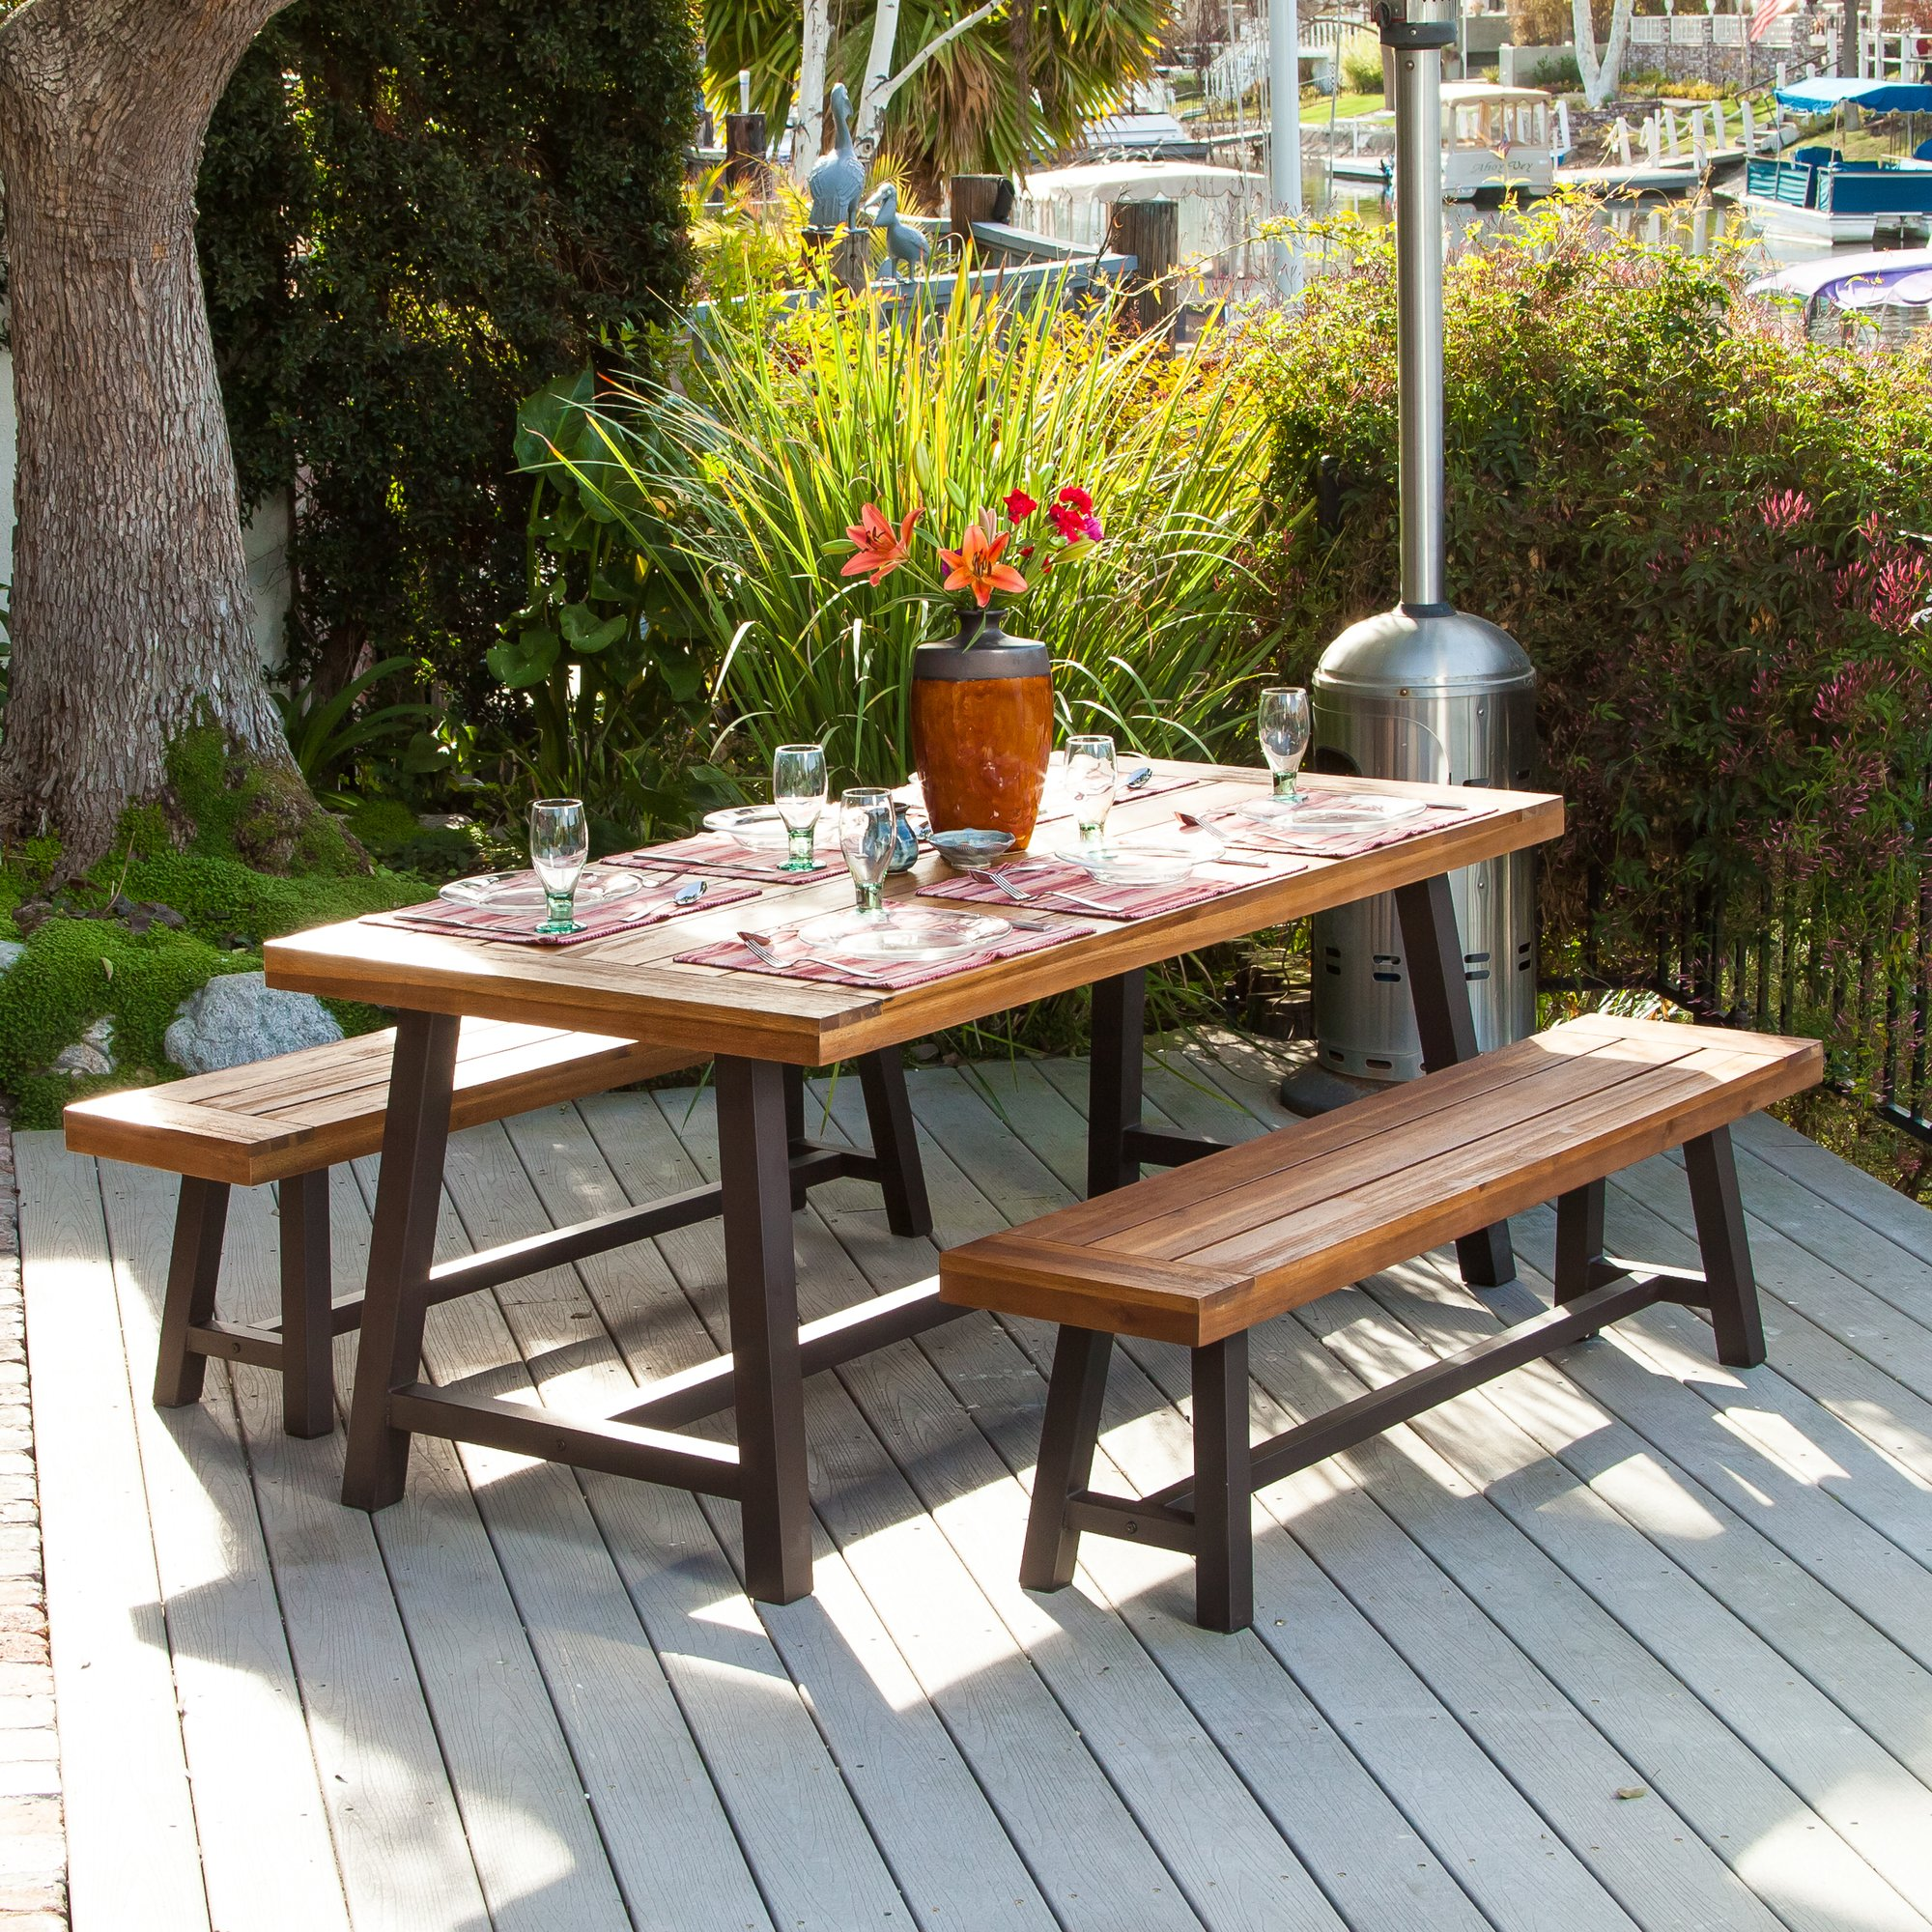 outdoor dining sets quick view. edison rustic metal 3 piece dining set IXSJWCT